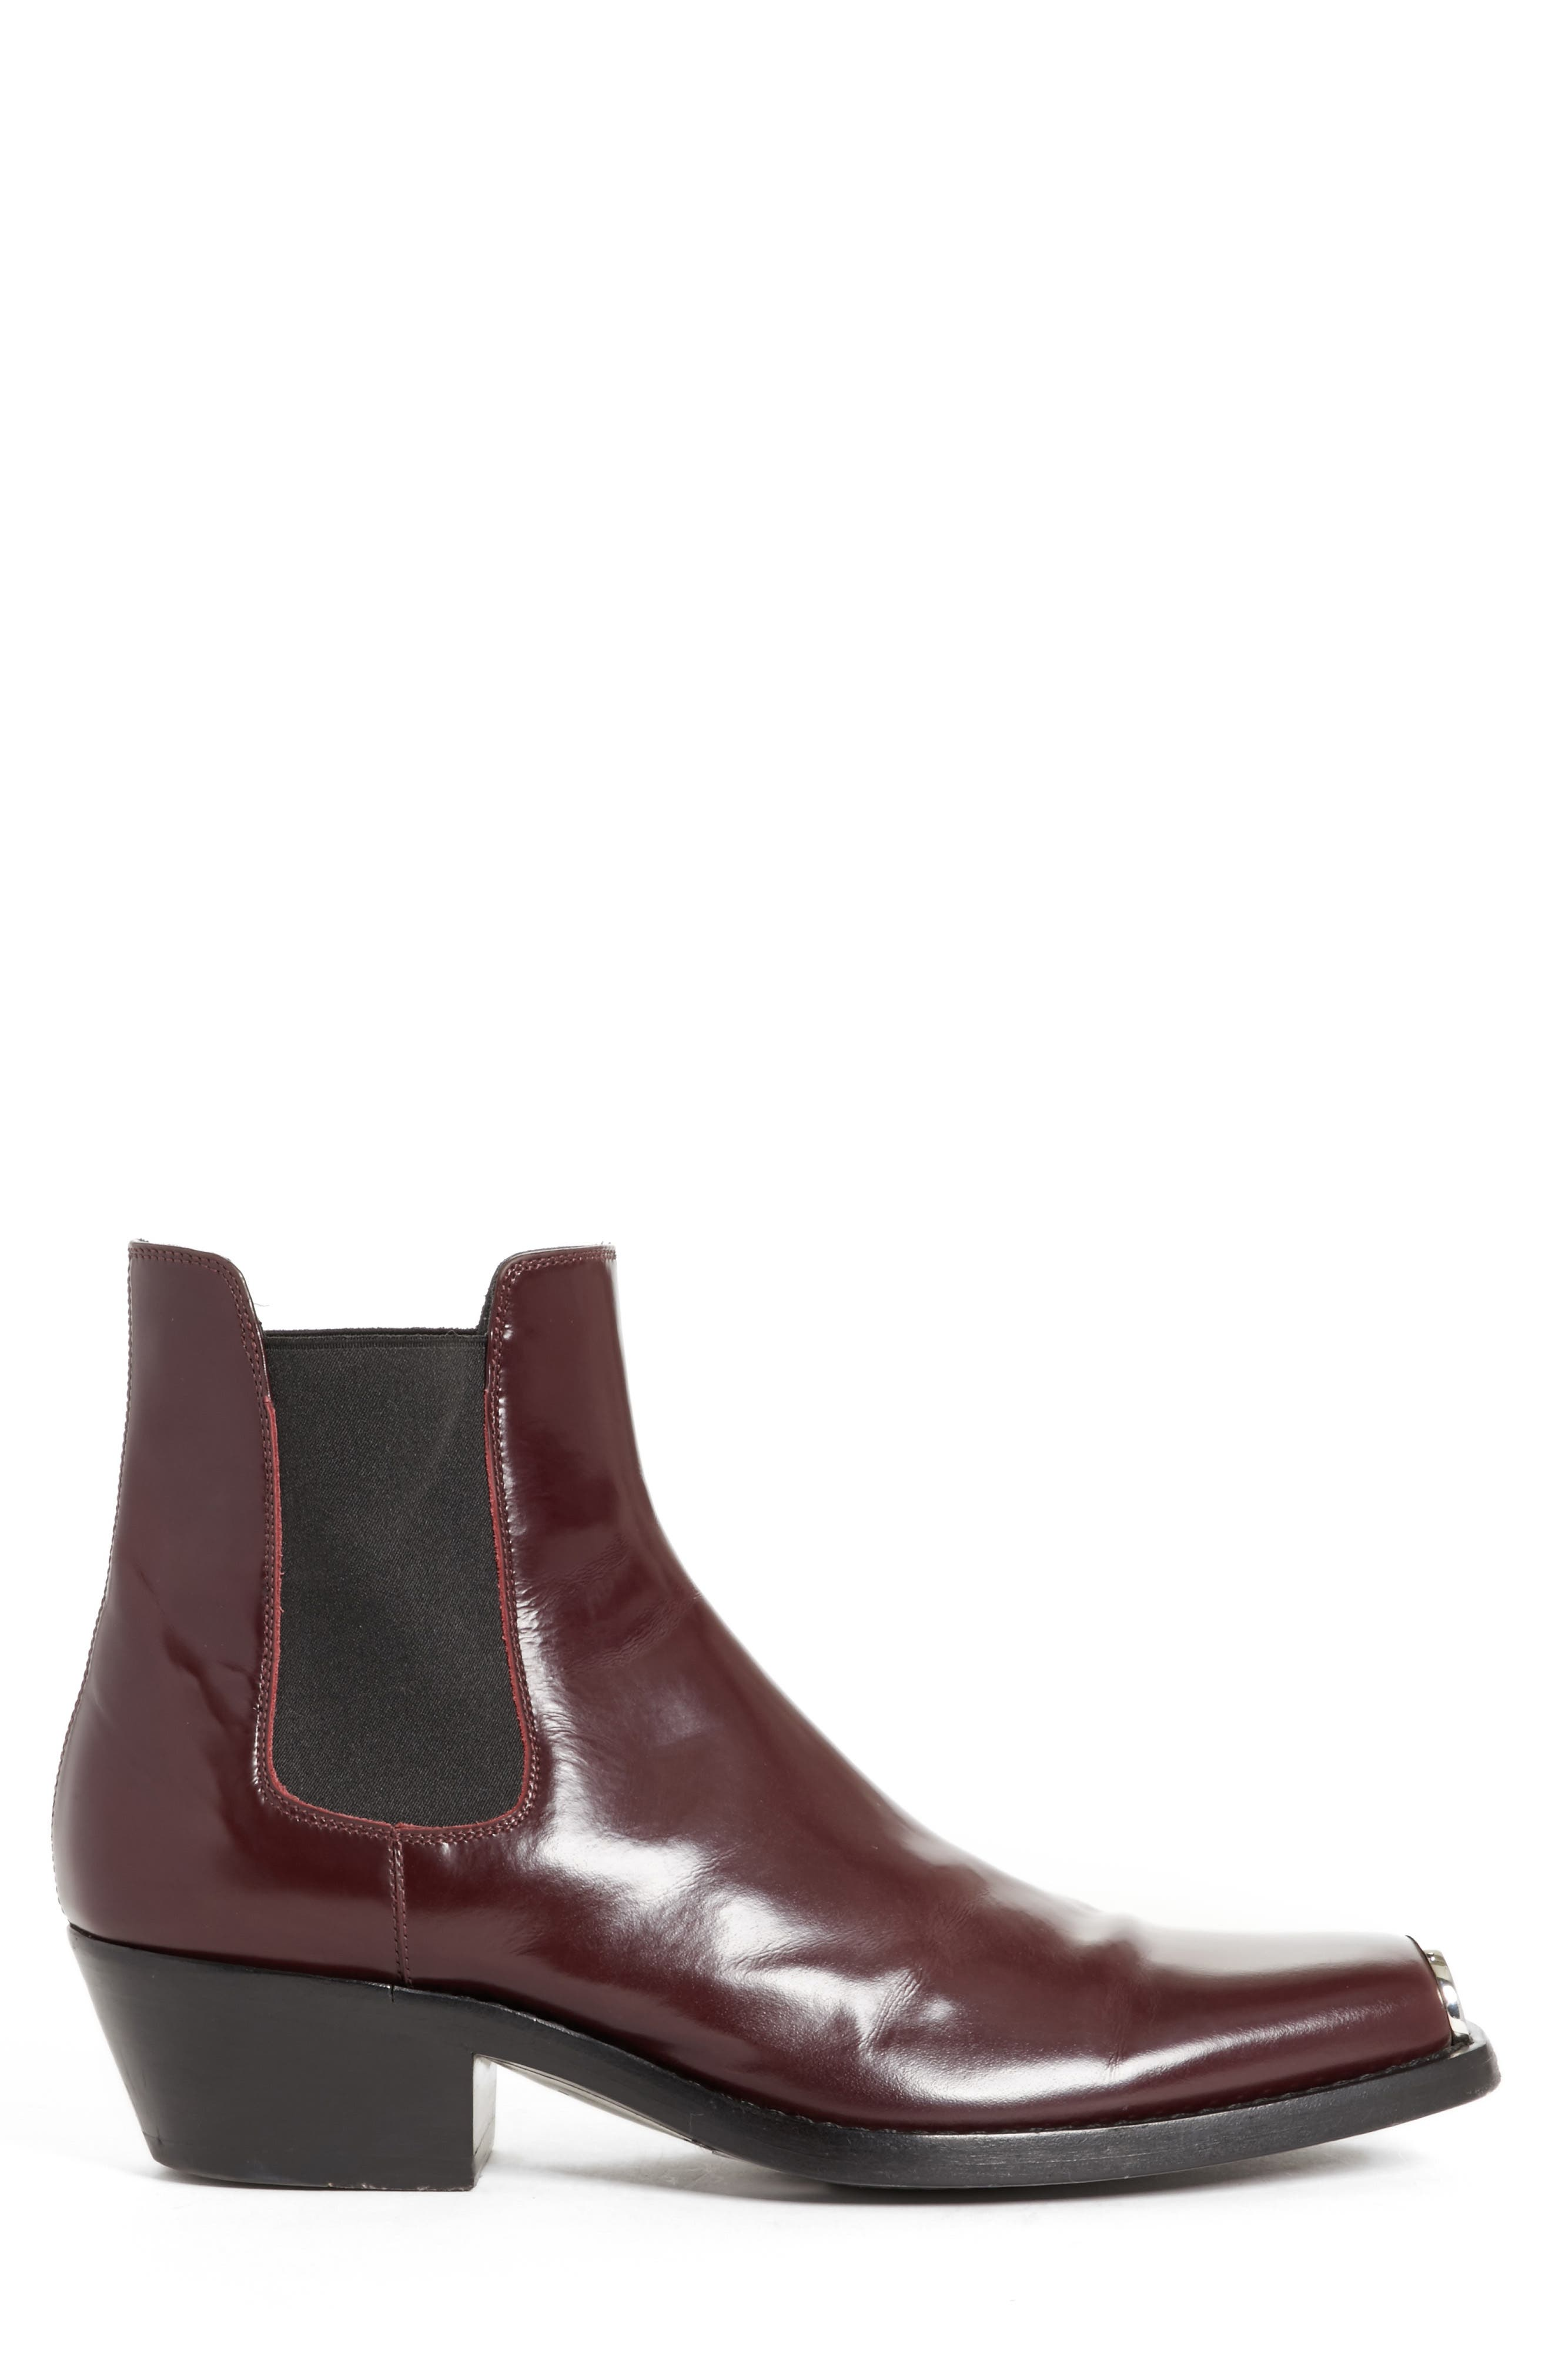 Chris Western Metal Tip Boot,                             Alternate thumbnail 5, color,                             Bordeaux Leather